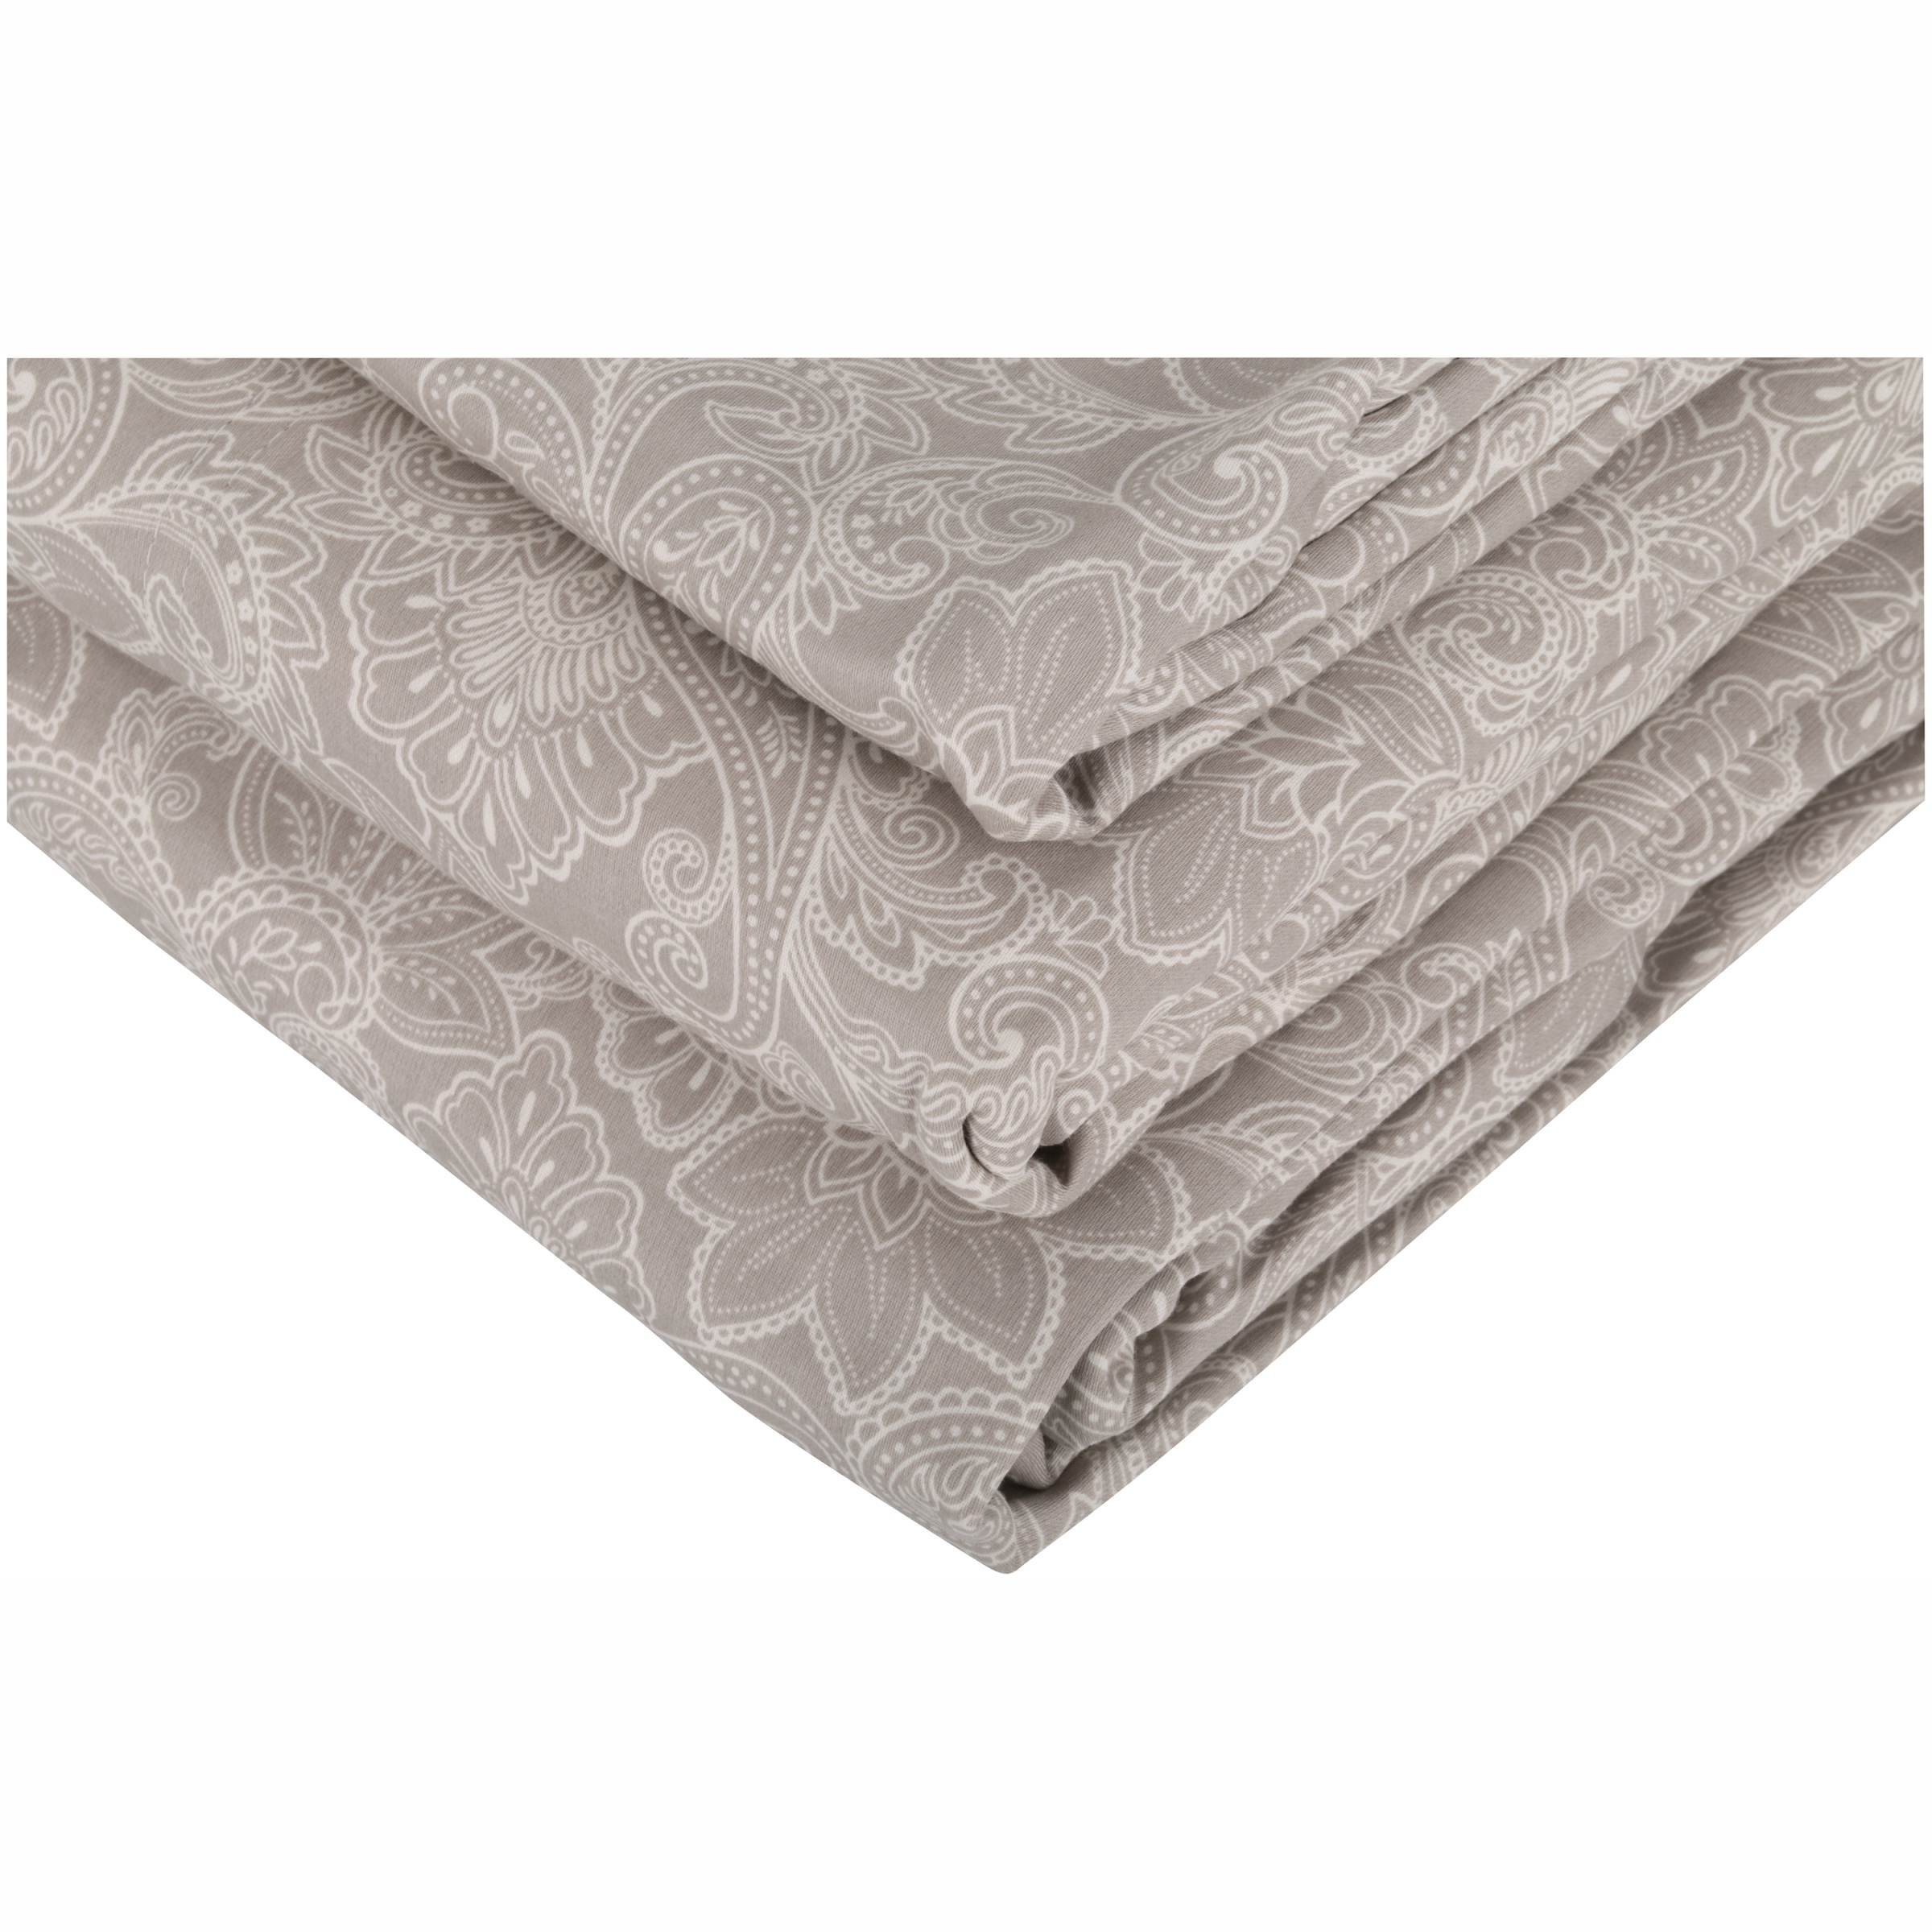 Better Homes & Gardens 300 Thread Count Bedding Sheet Collection